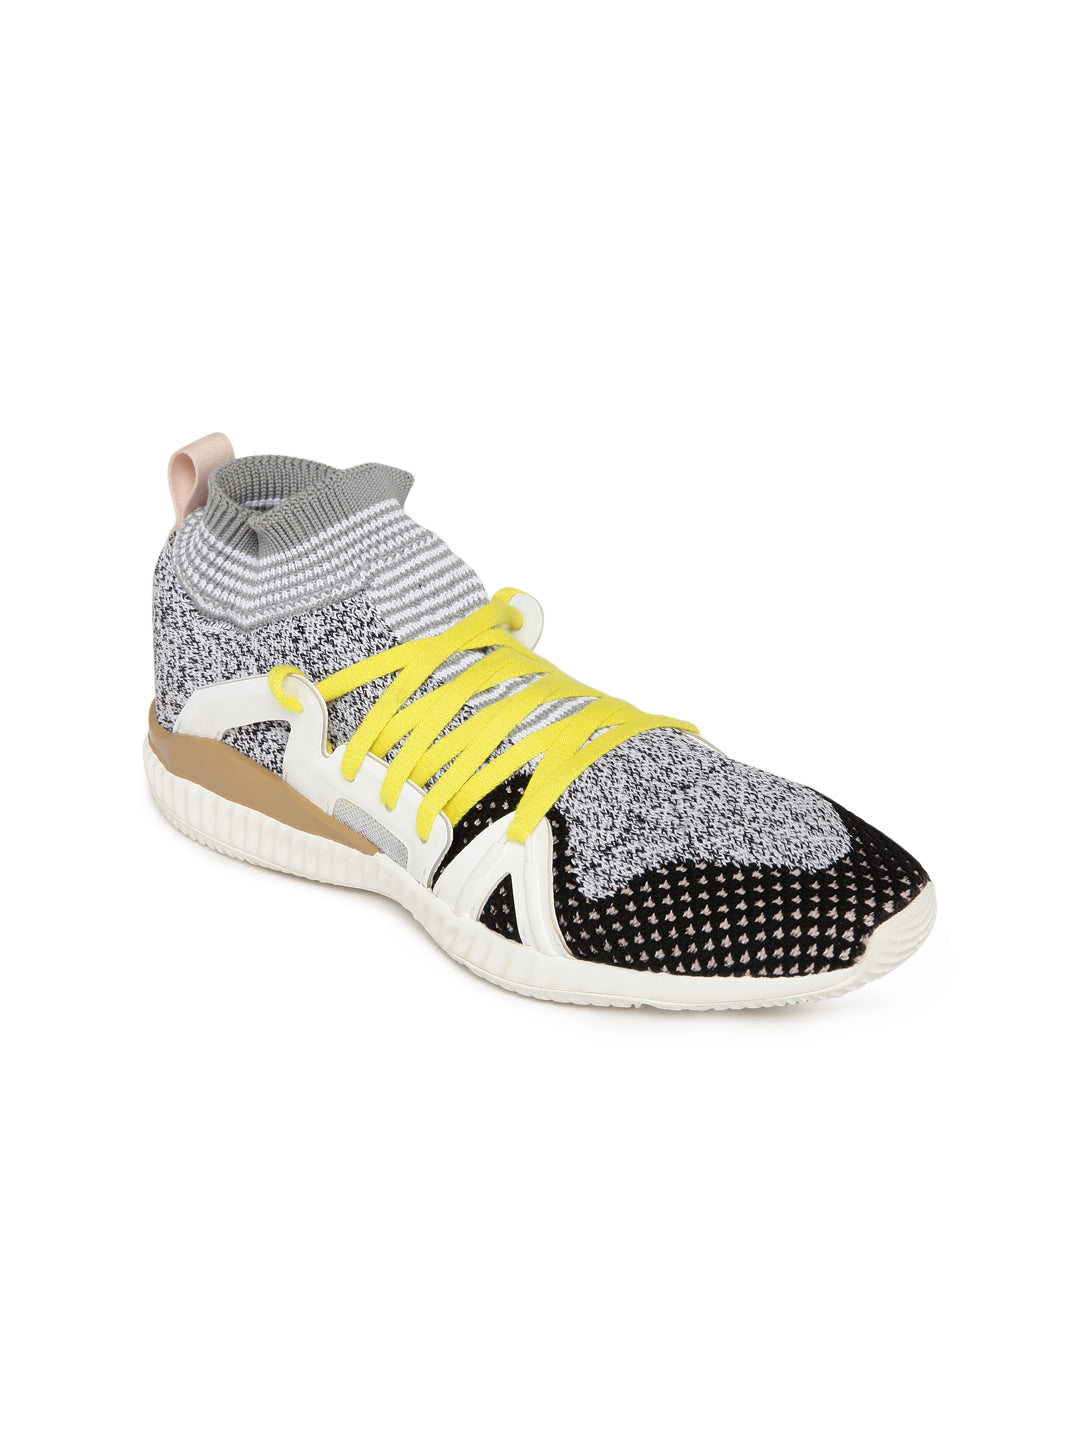 adidas by Stella McCartney WMNS Edge Trainer White Flash Cardboard